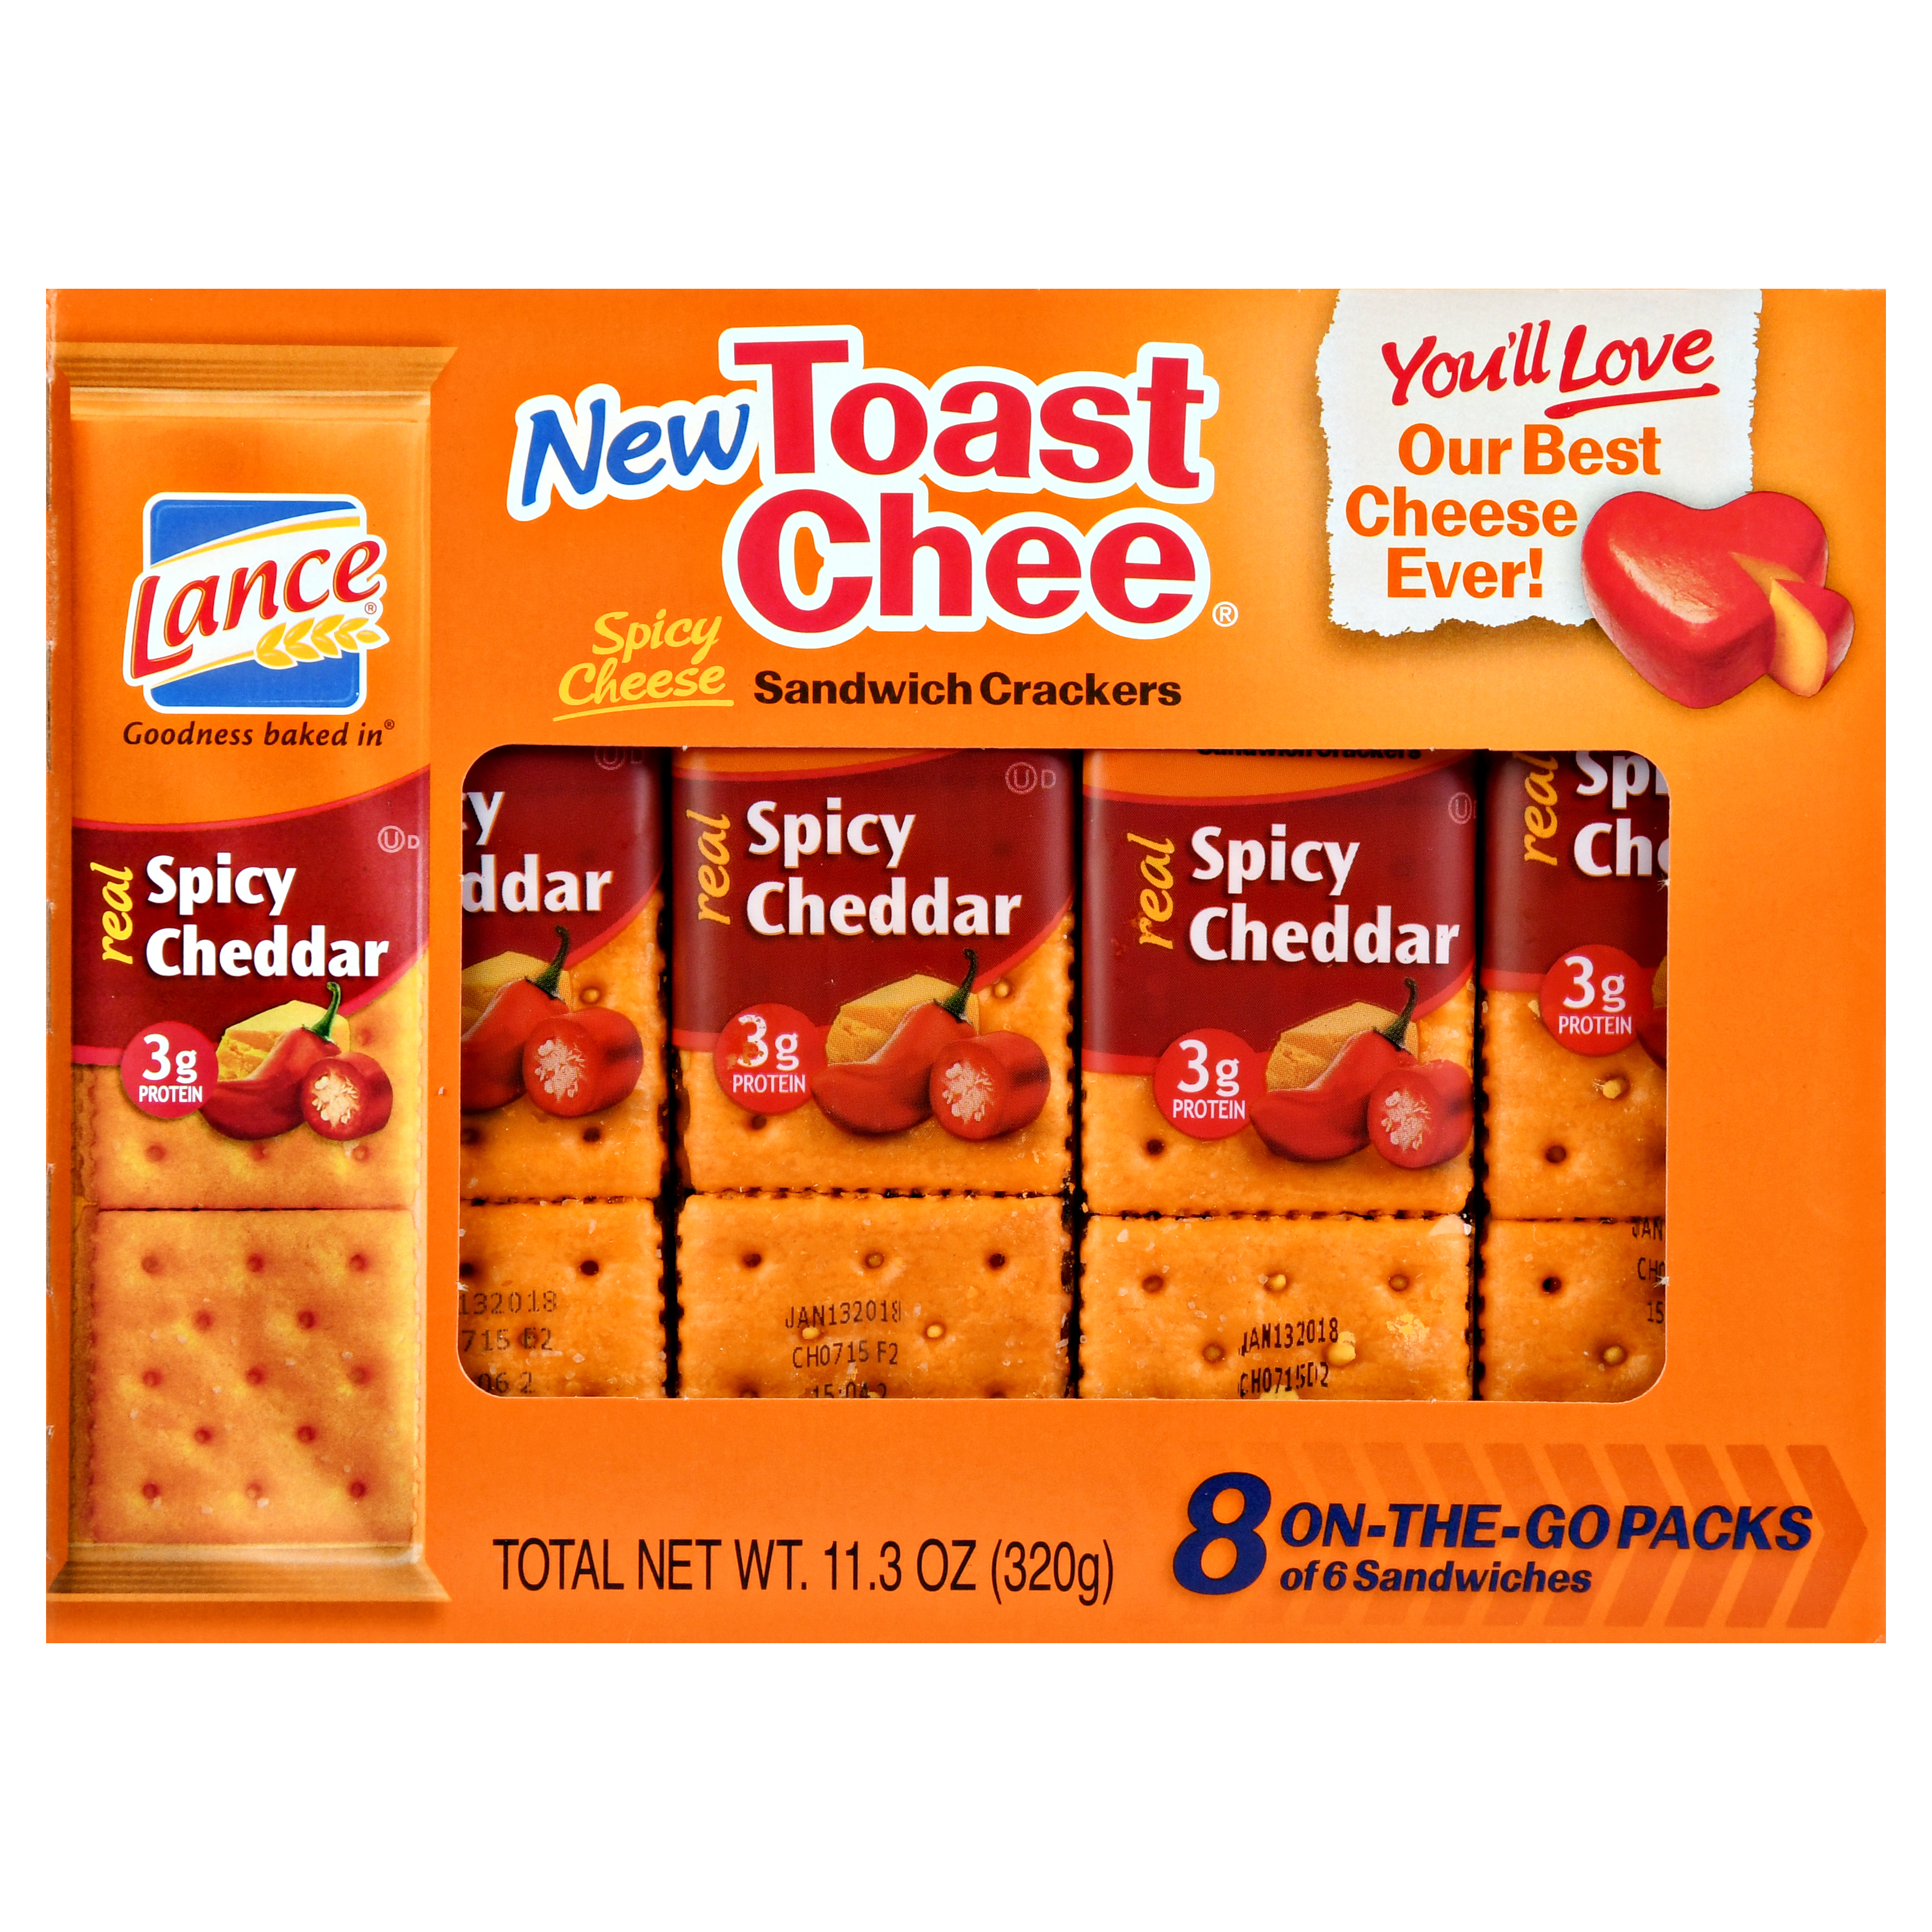 Lance Toast Chee Spicy Cheddar Sandwich Crackers